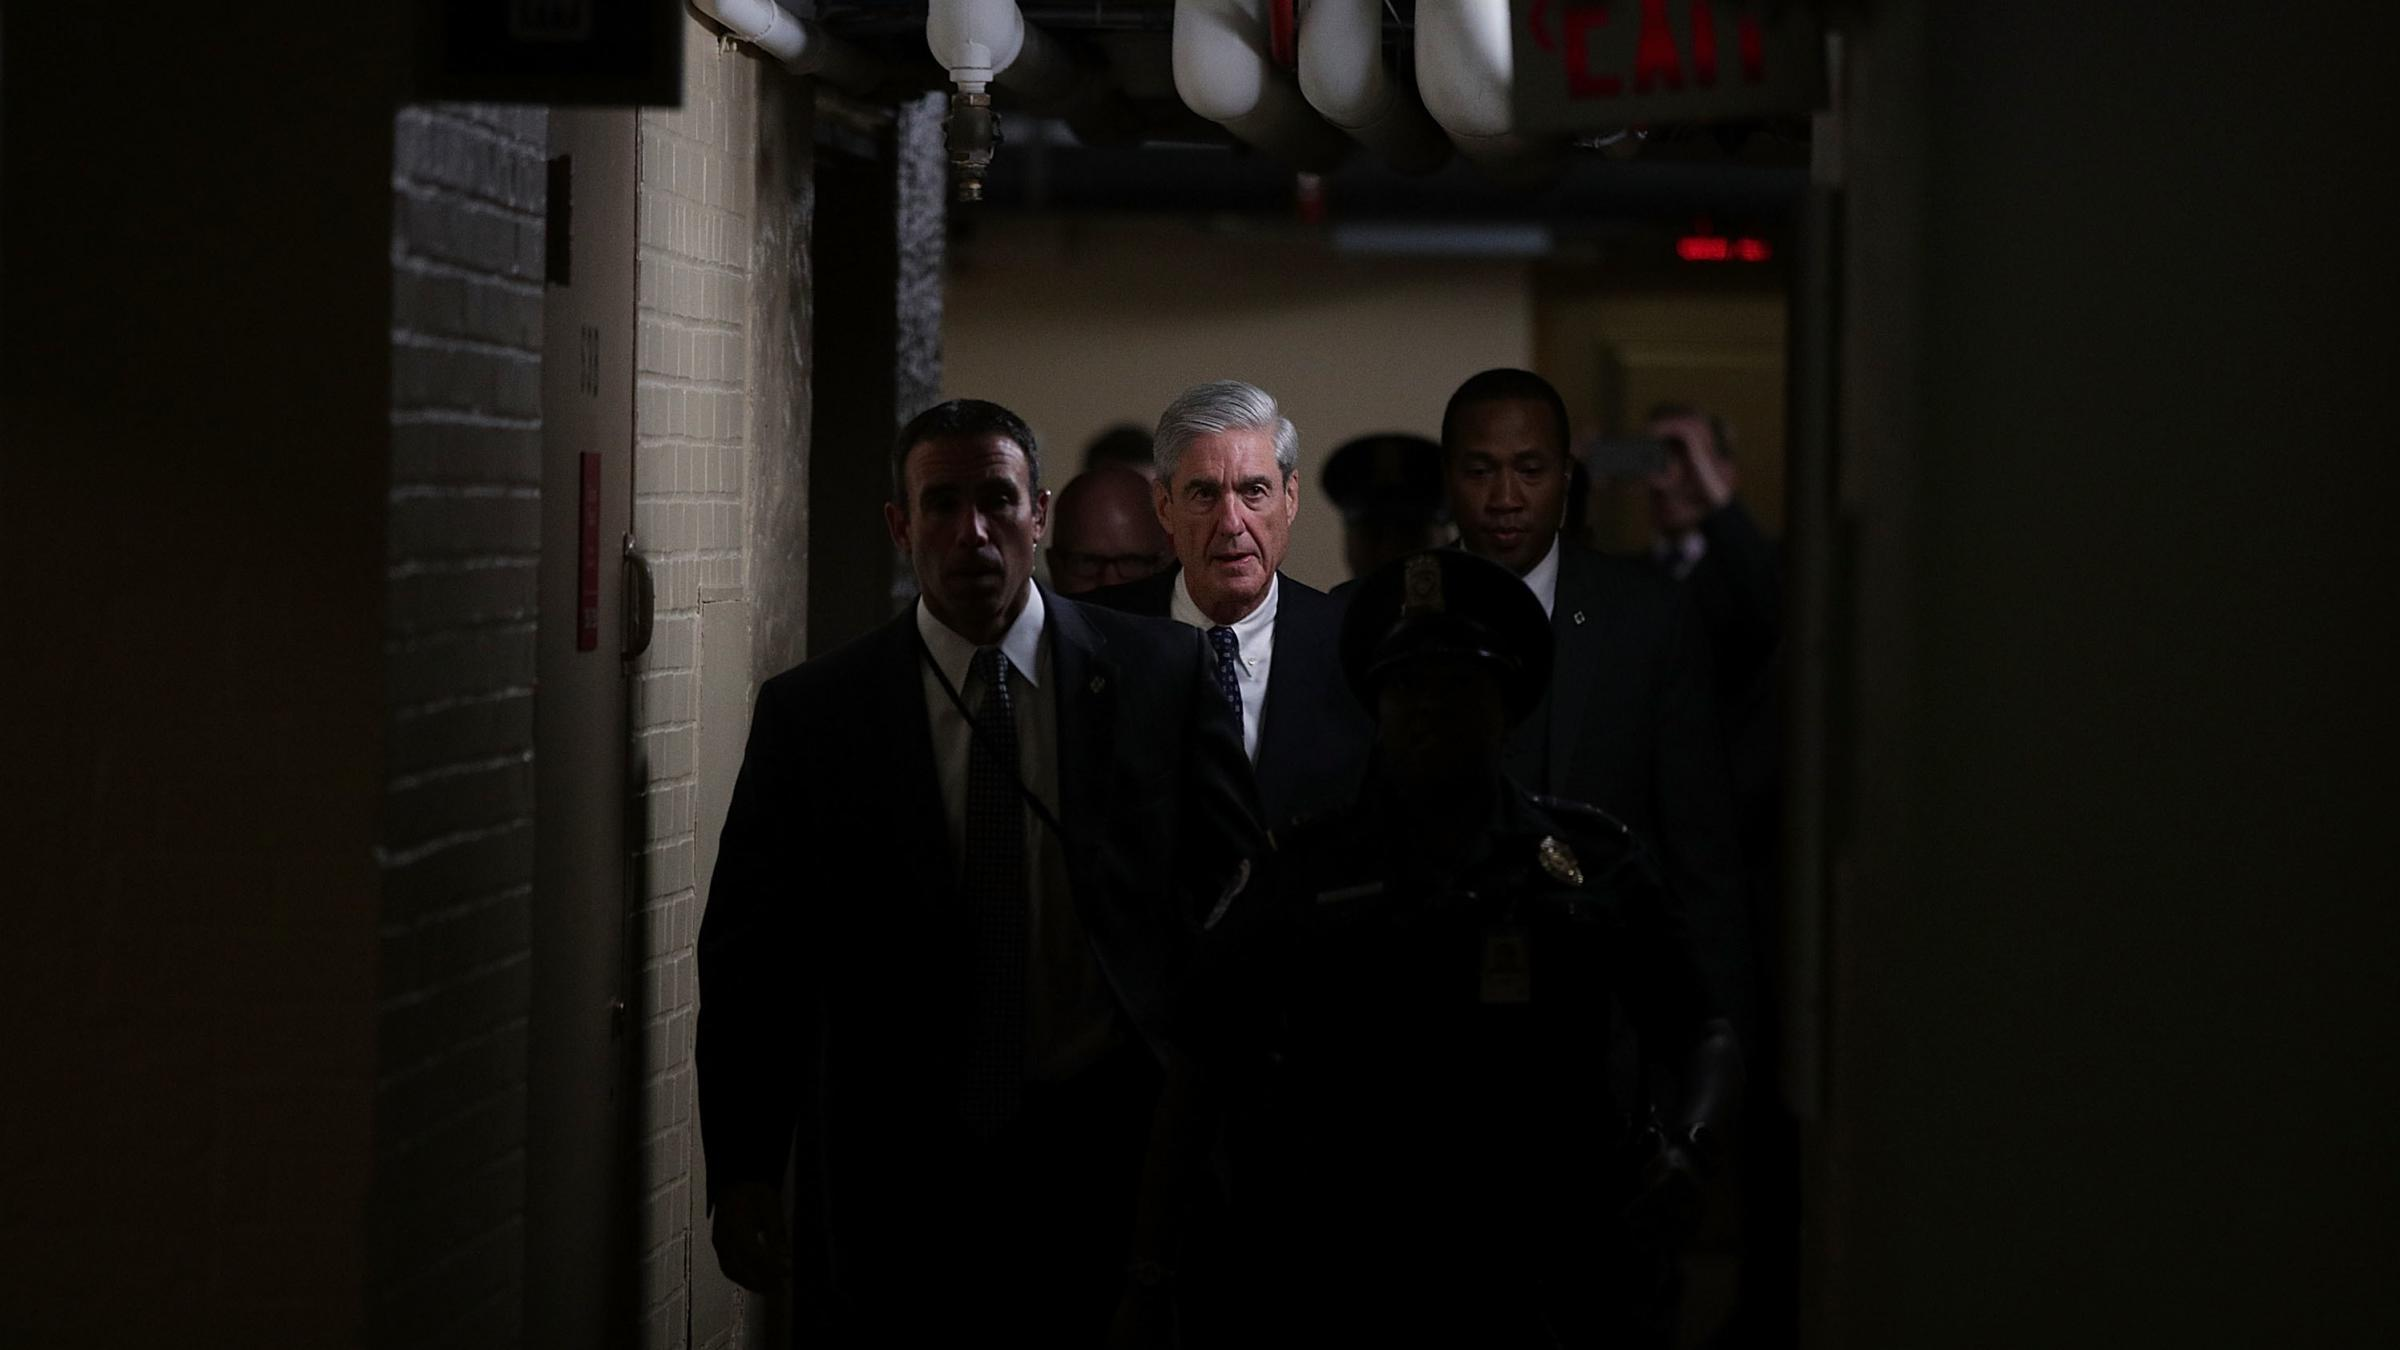 Special counsel Robert Mueller center leaves after a closed meeting with members of the Senate Judiciary Committee